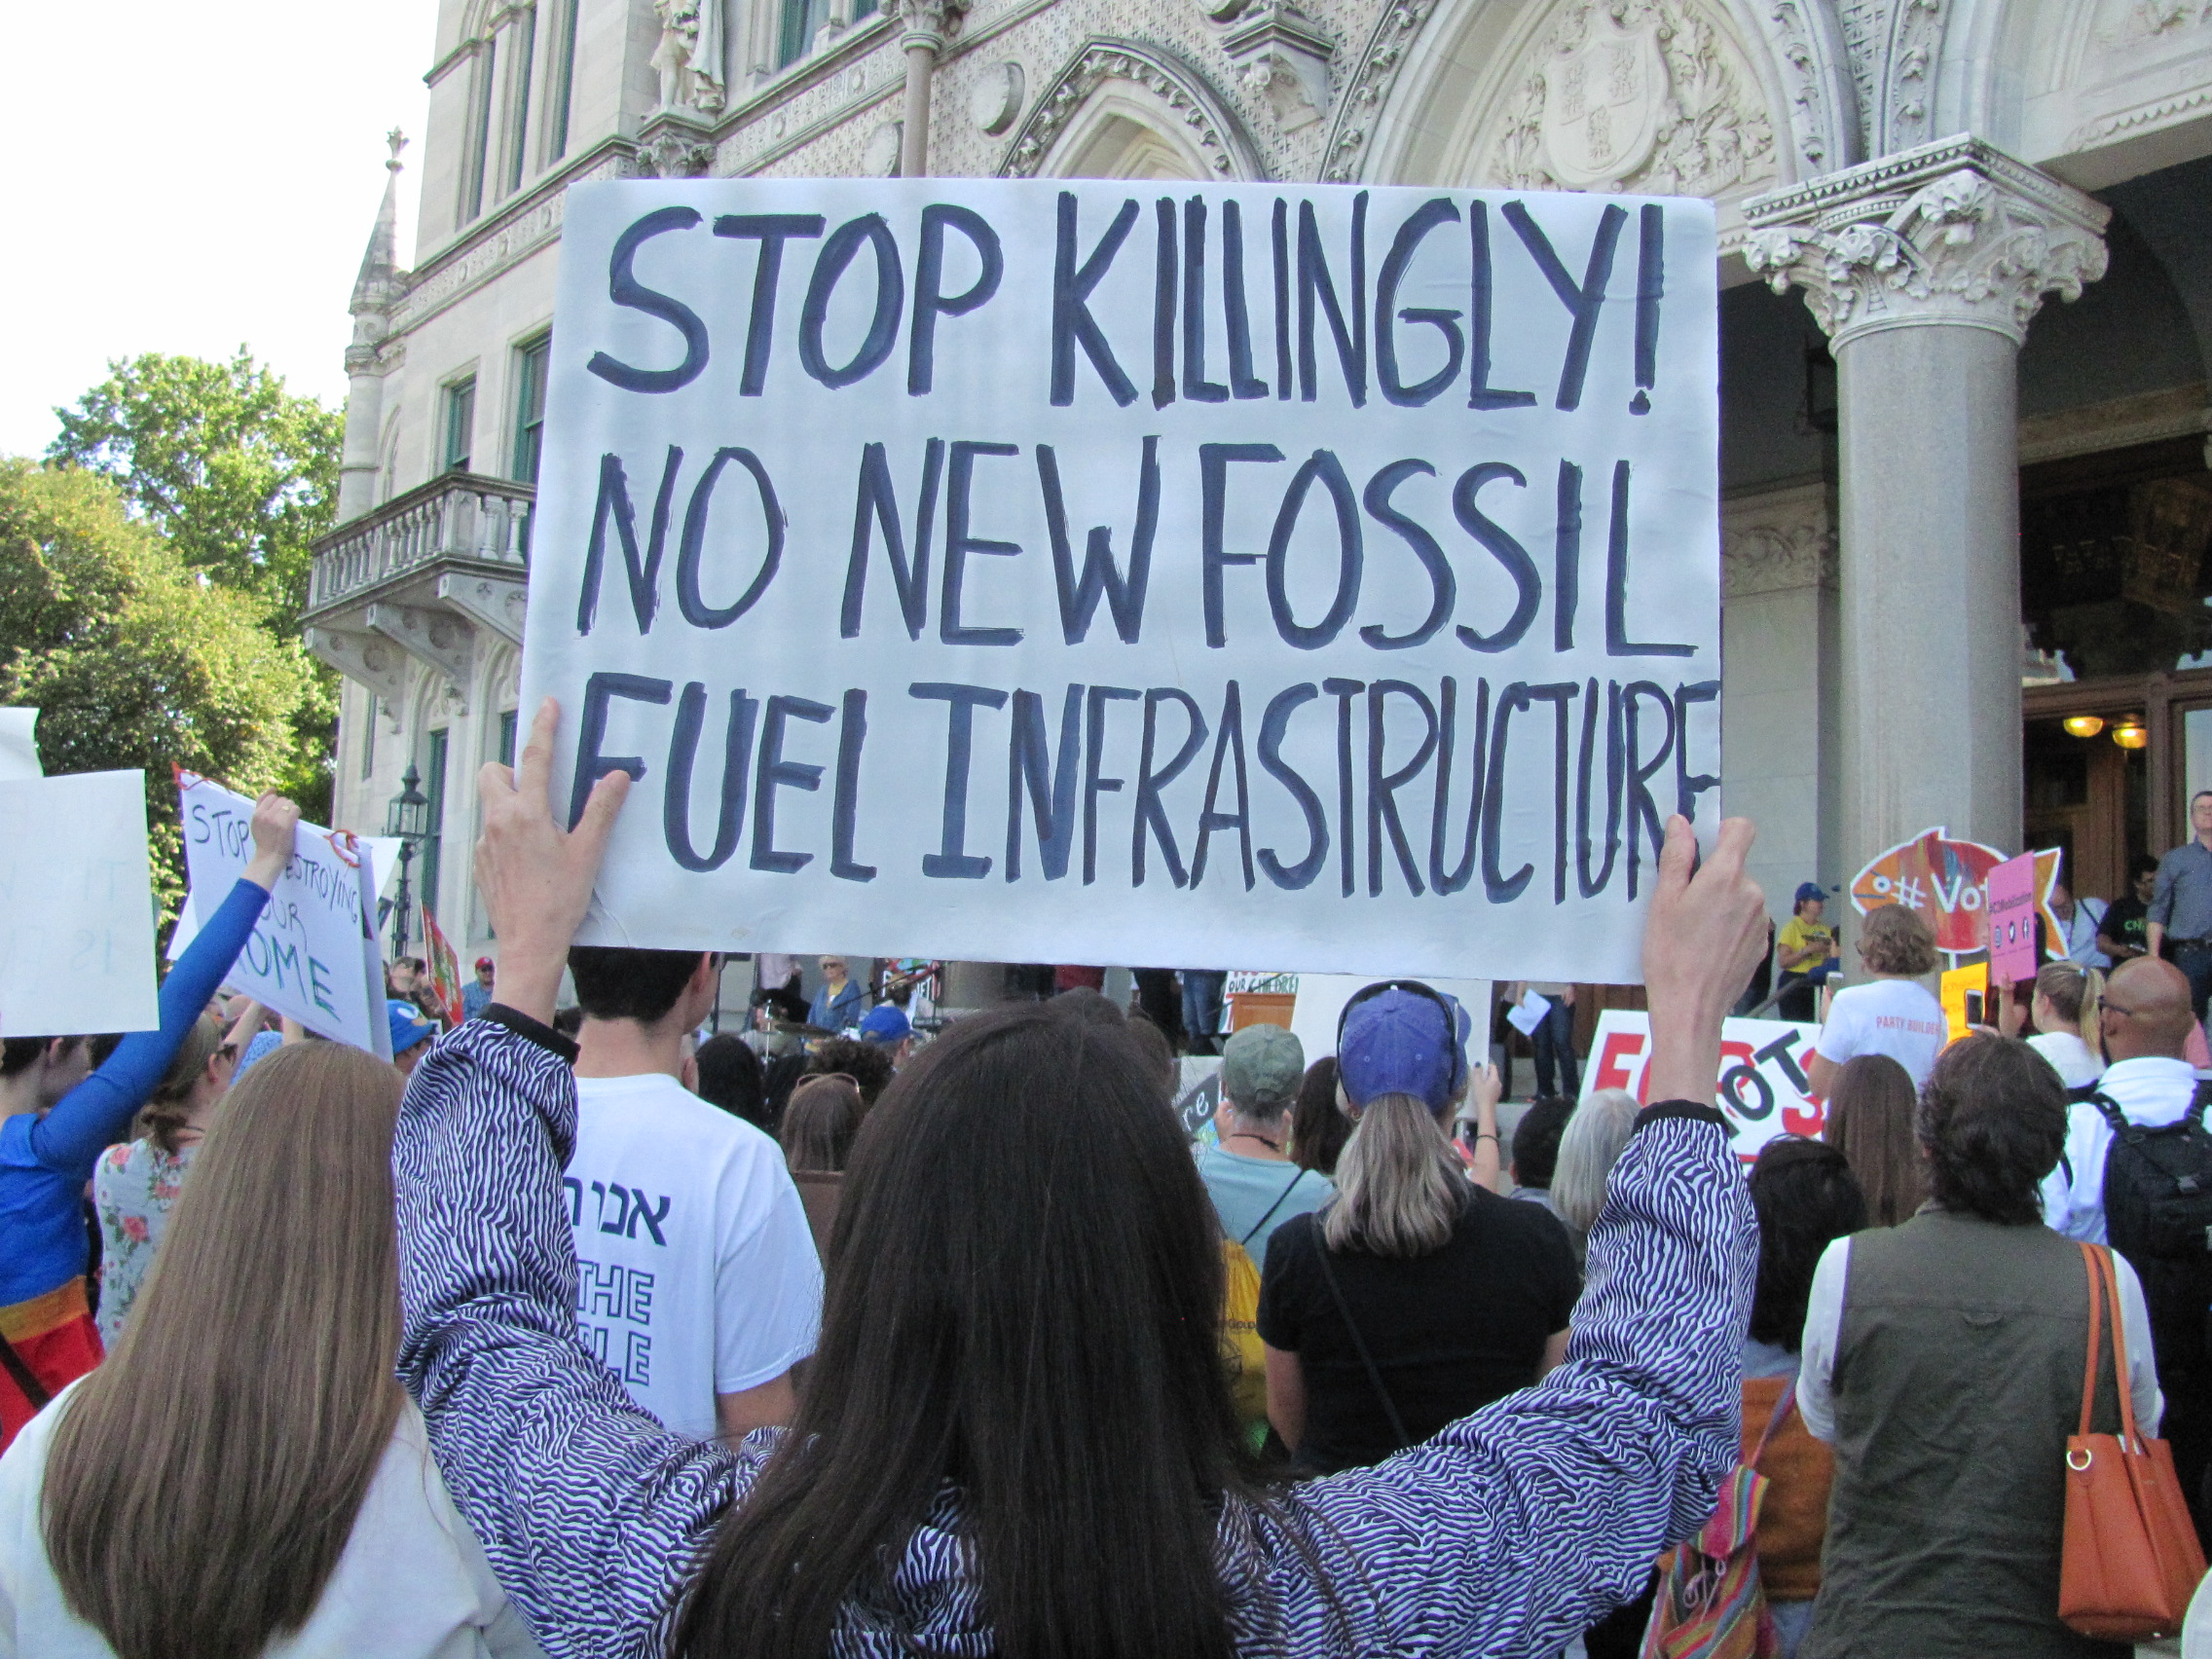 Climate change v. Killingly gas power plant. And the winner is …